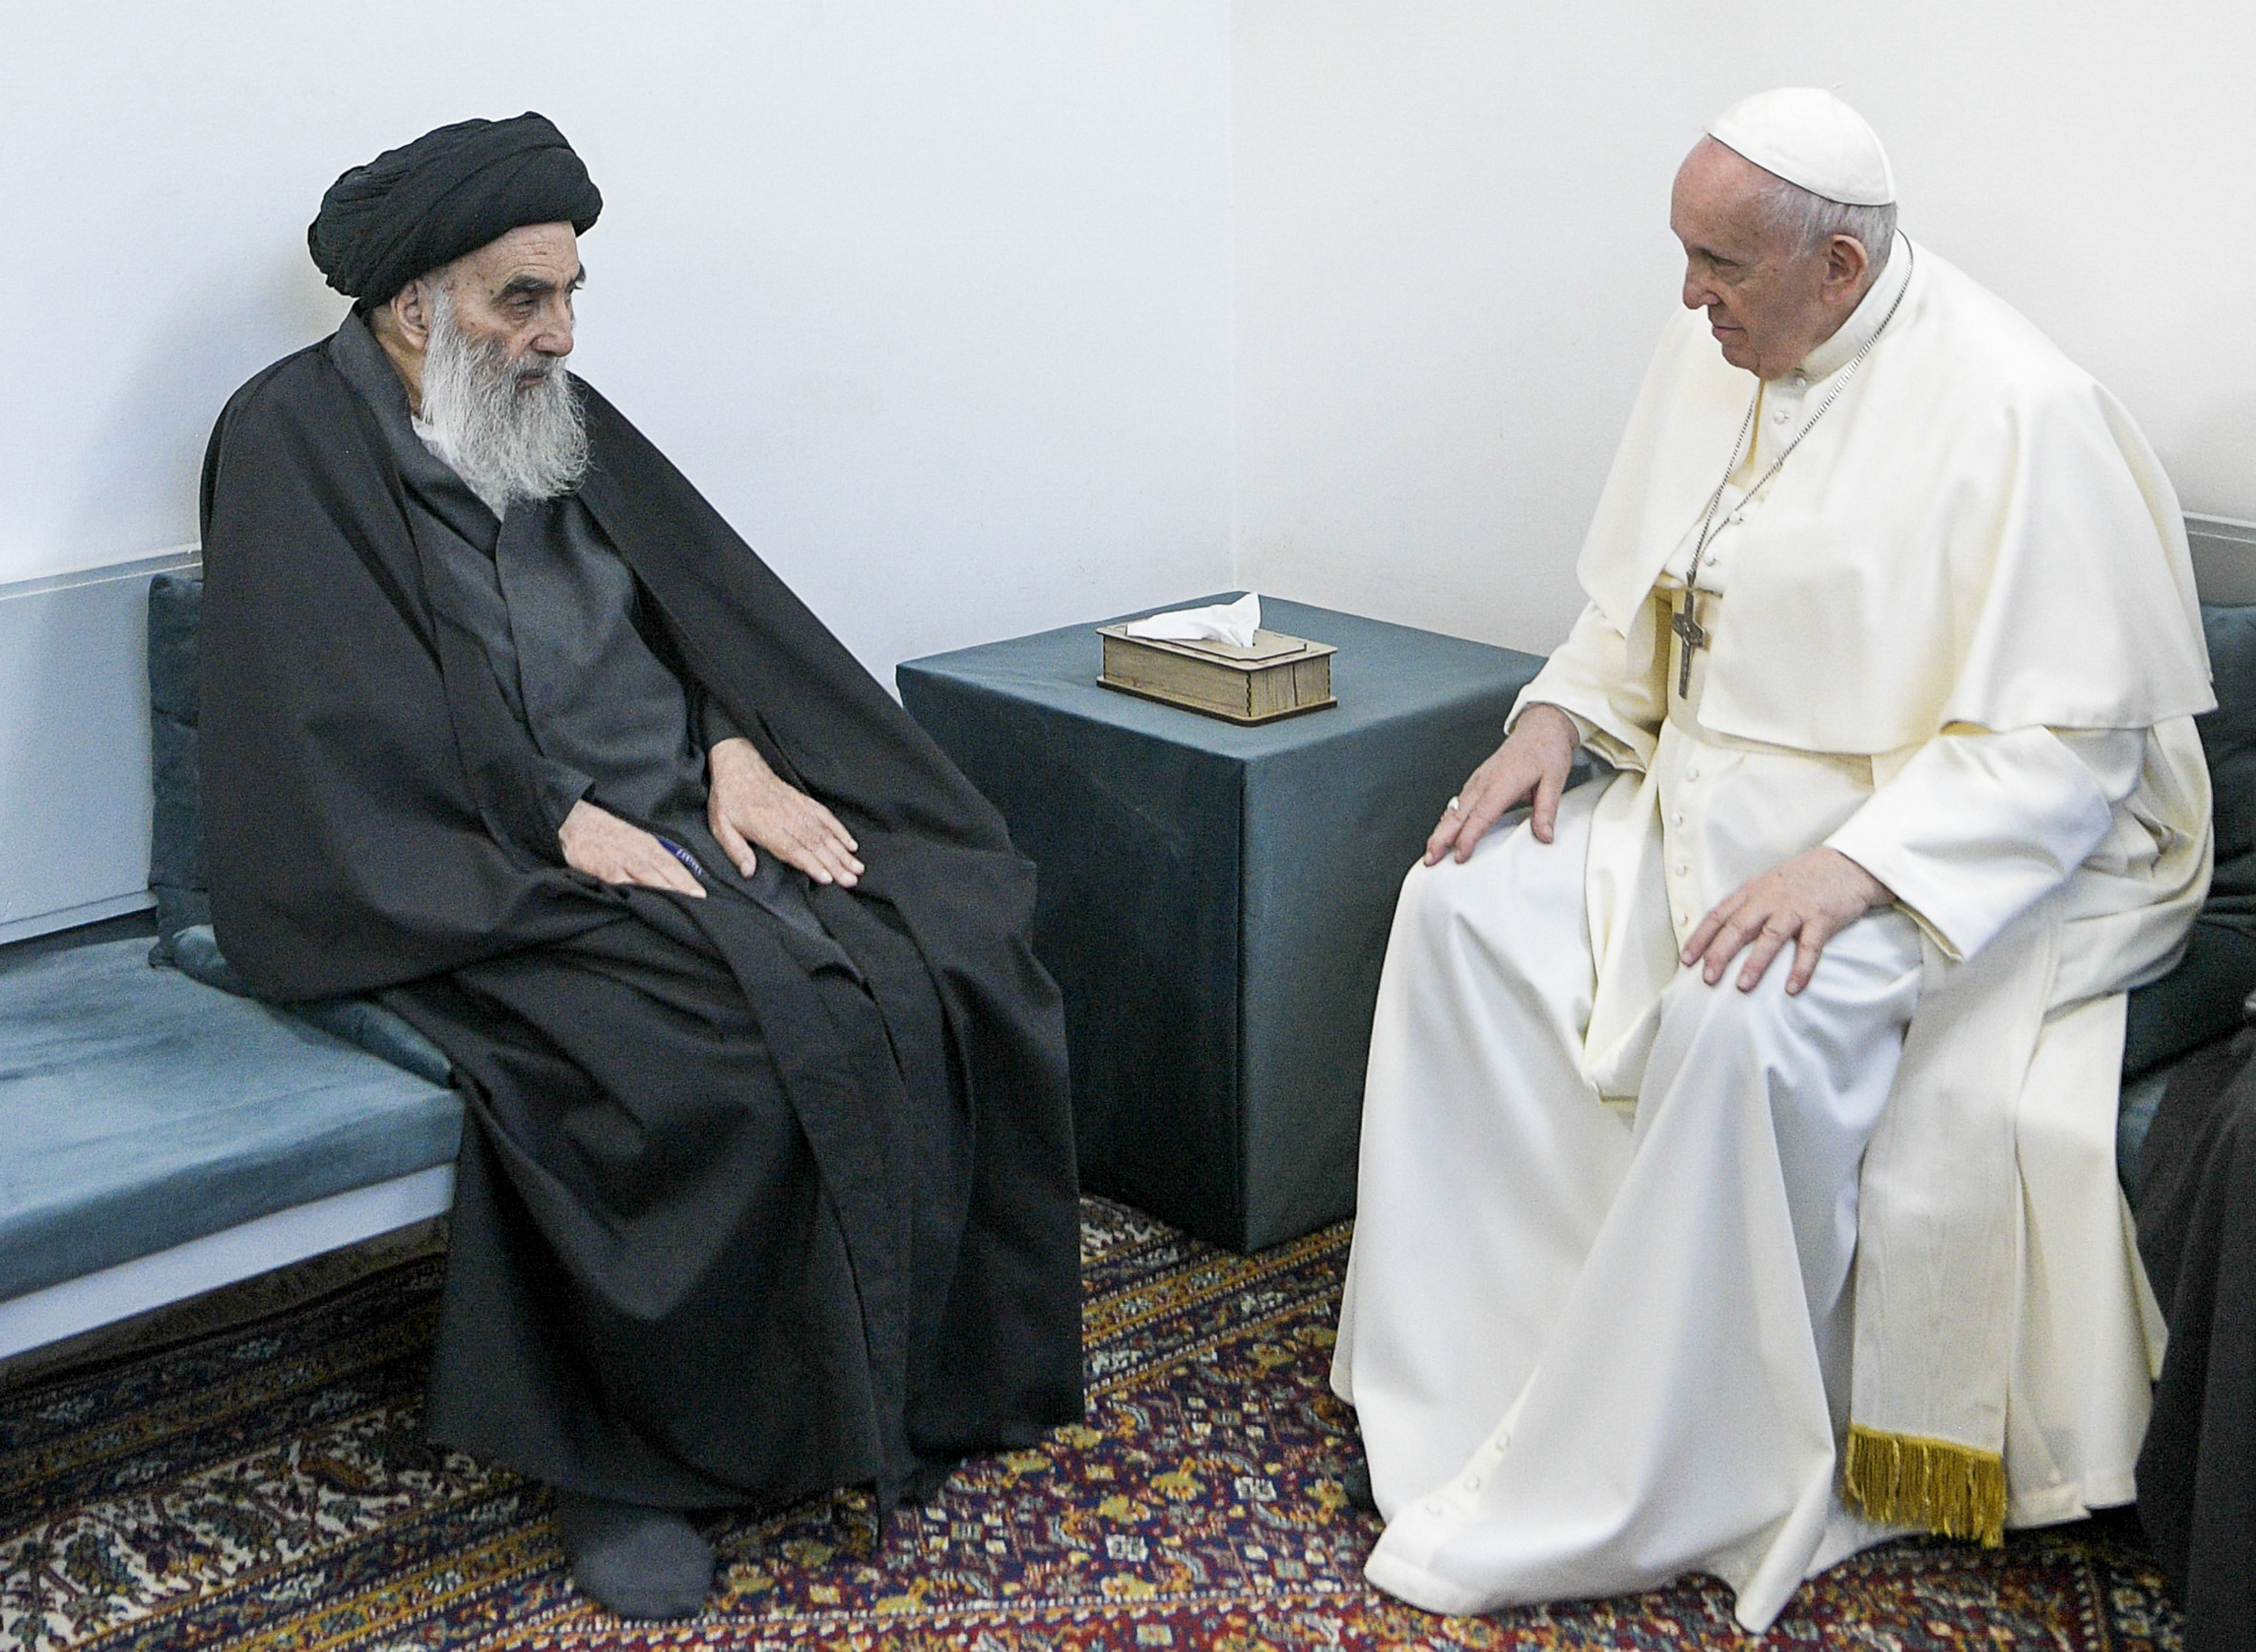 Pope Francis meets with top Shiite cleric in Iraq